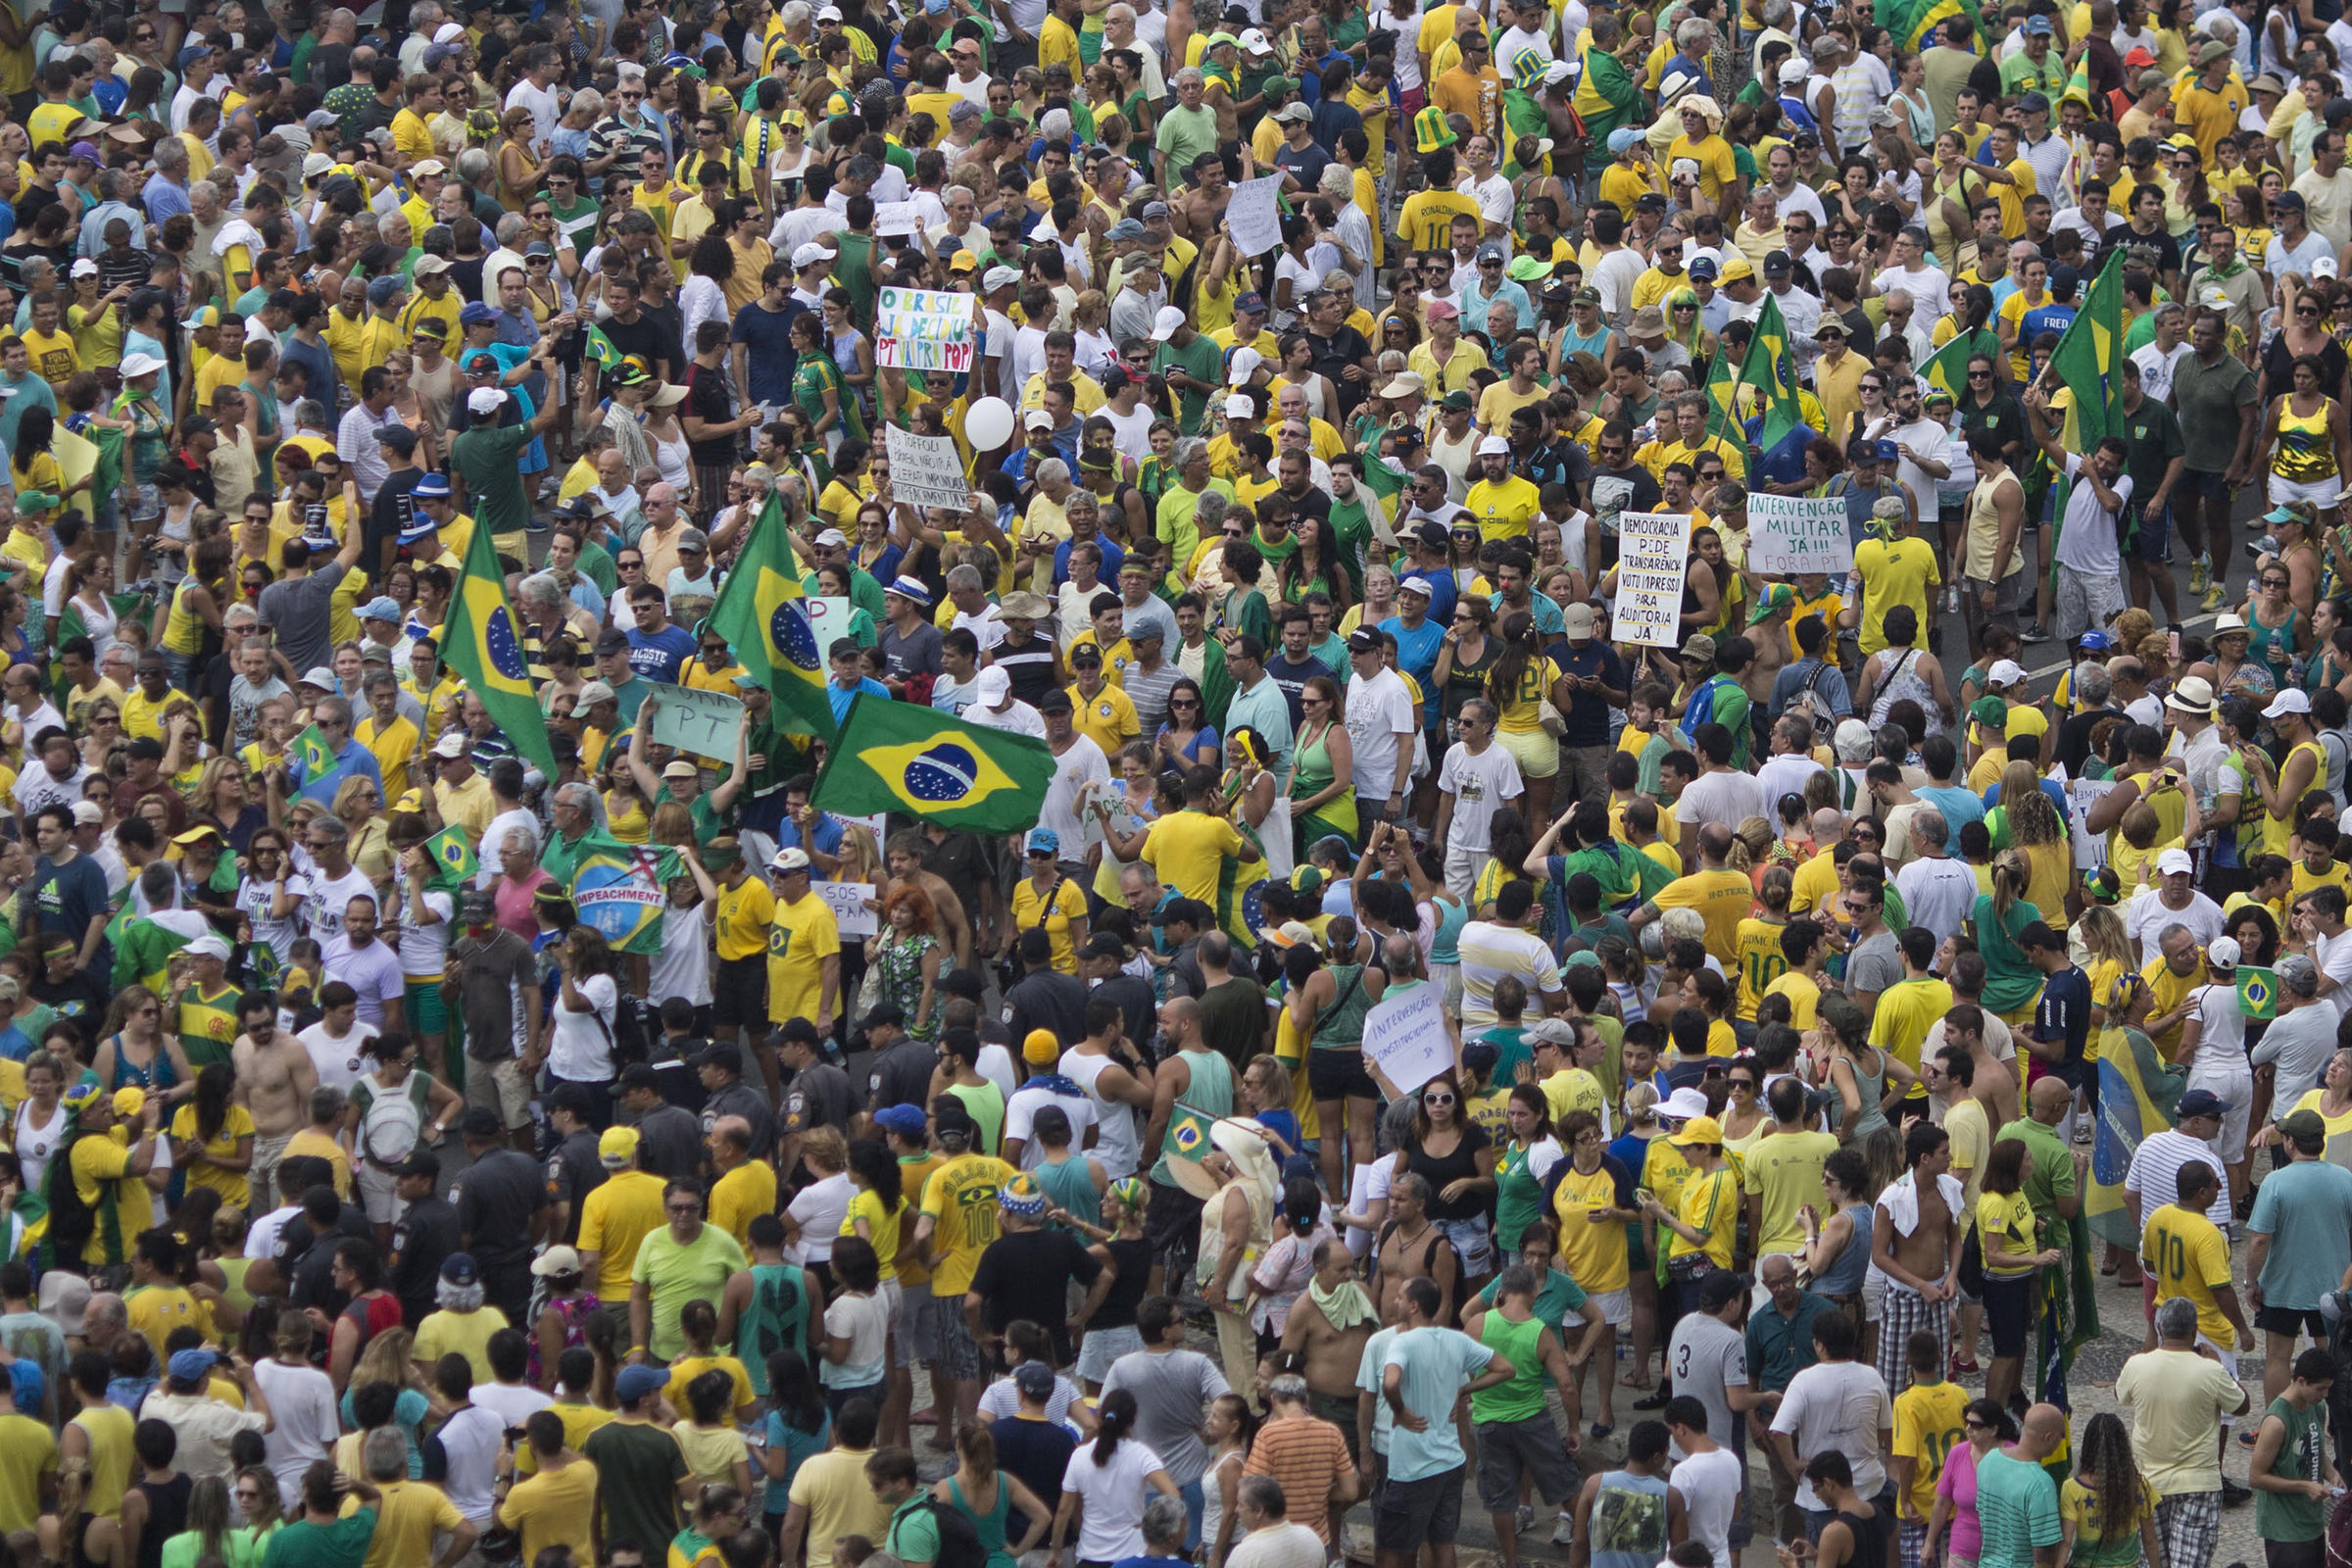 growing protests in brazil Now her apparent assassination is sparking protests nationwide skip to main content skip to learn here about franco's efforts to bring positive change to brazil innovators across the world are growing new strains of dragon fruit that taste great and are profitable to grow.